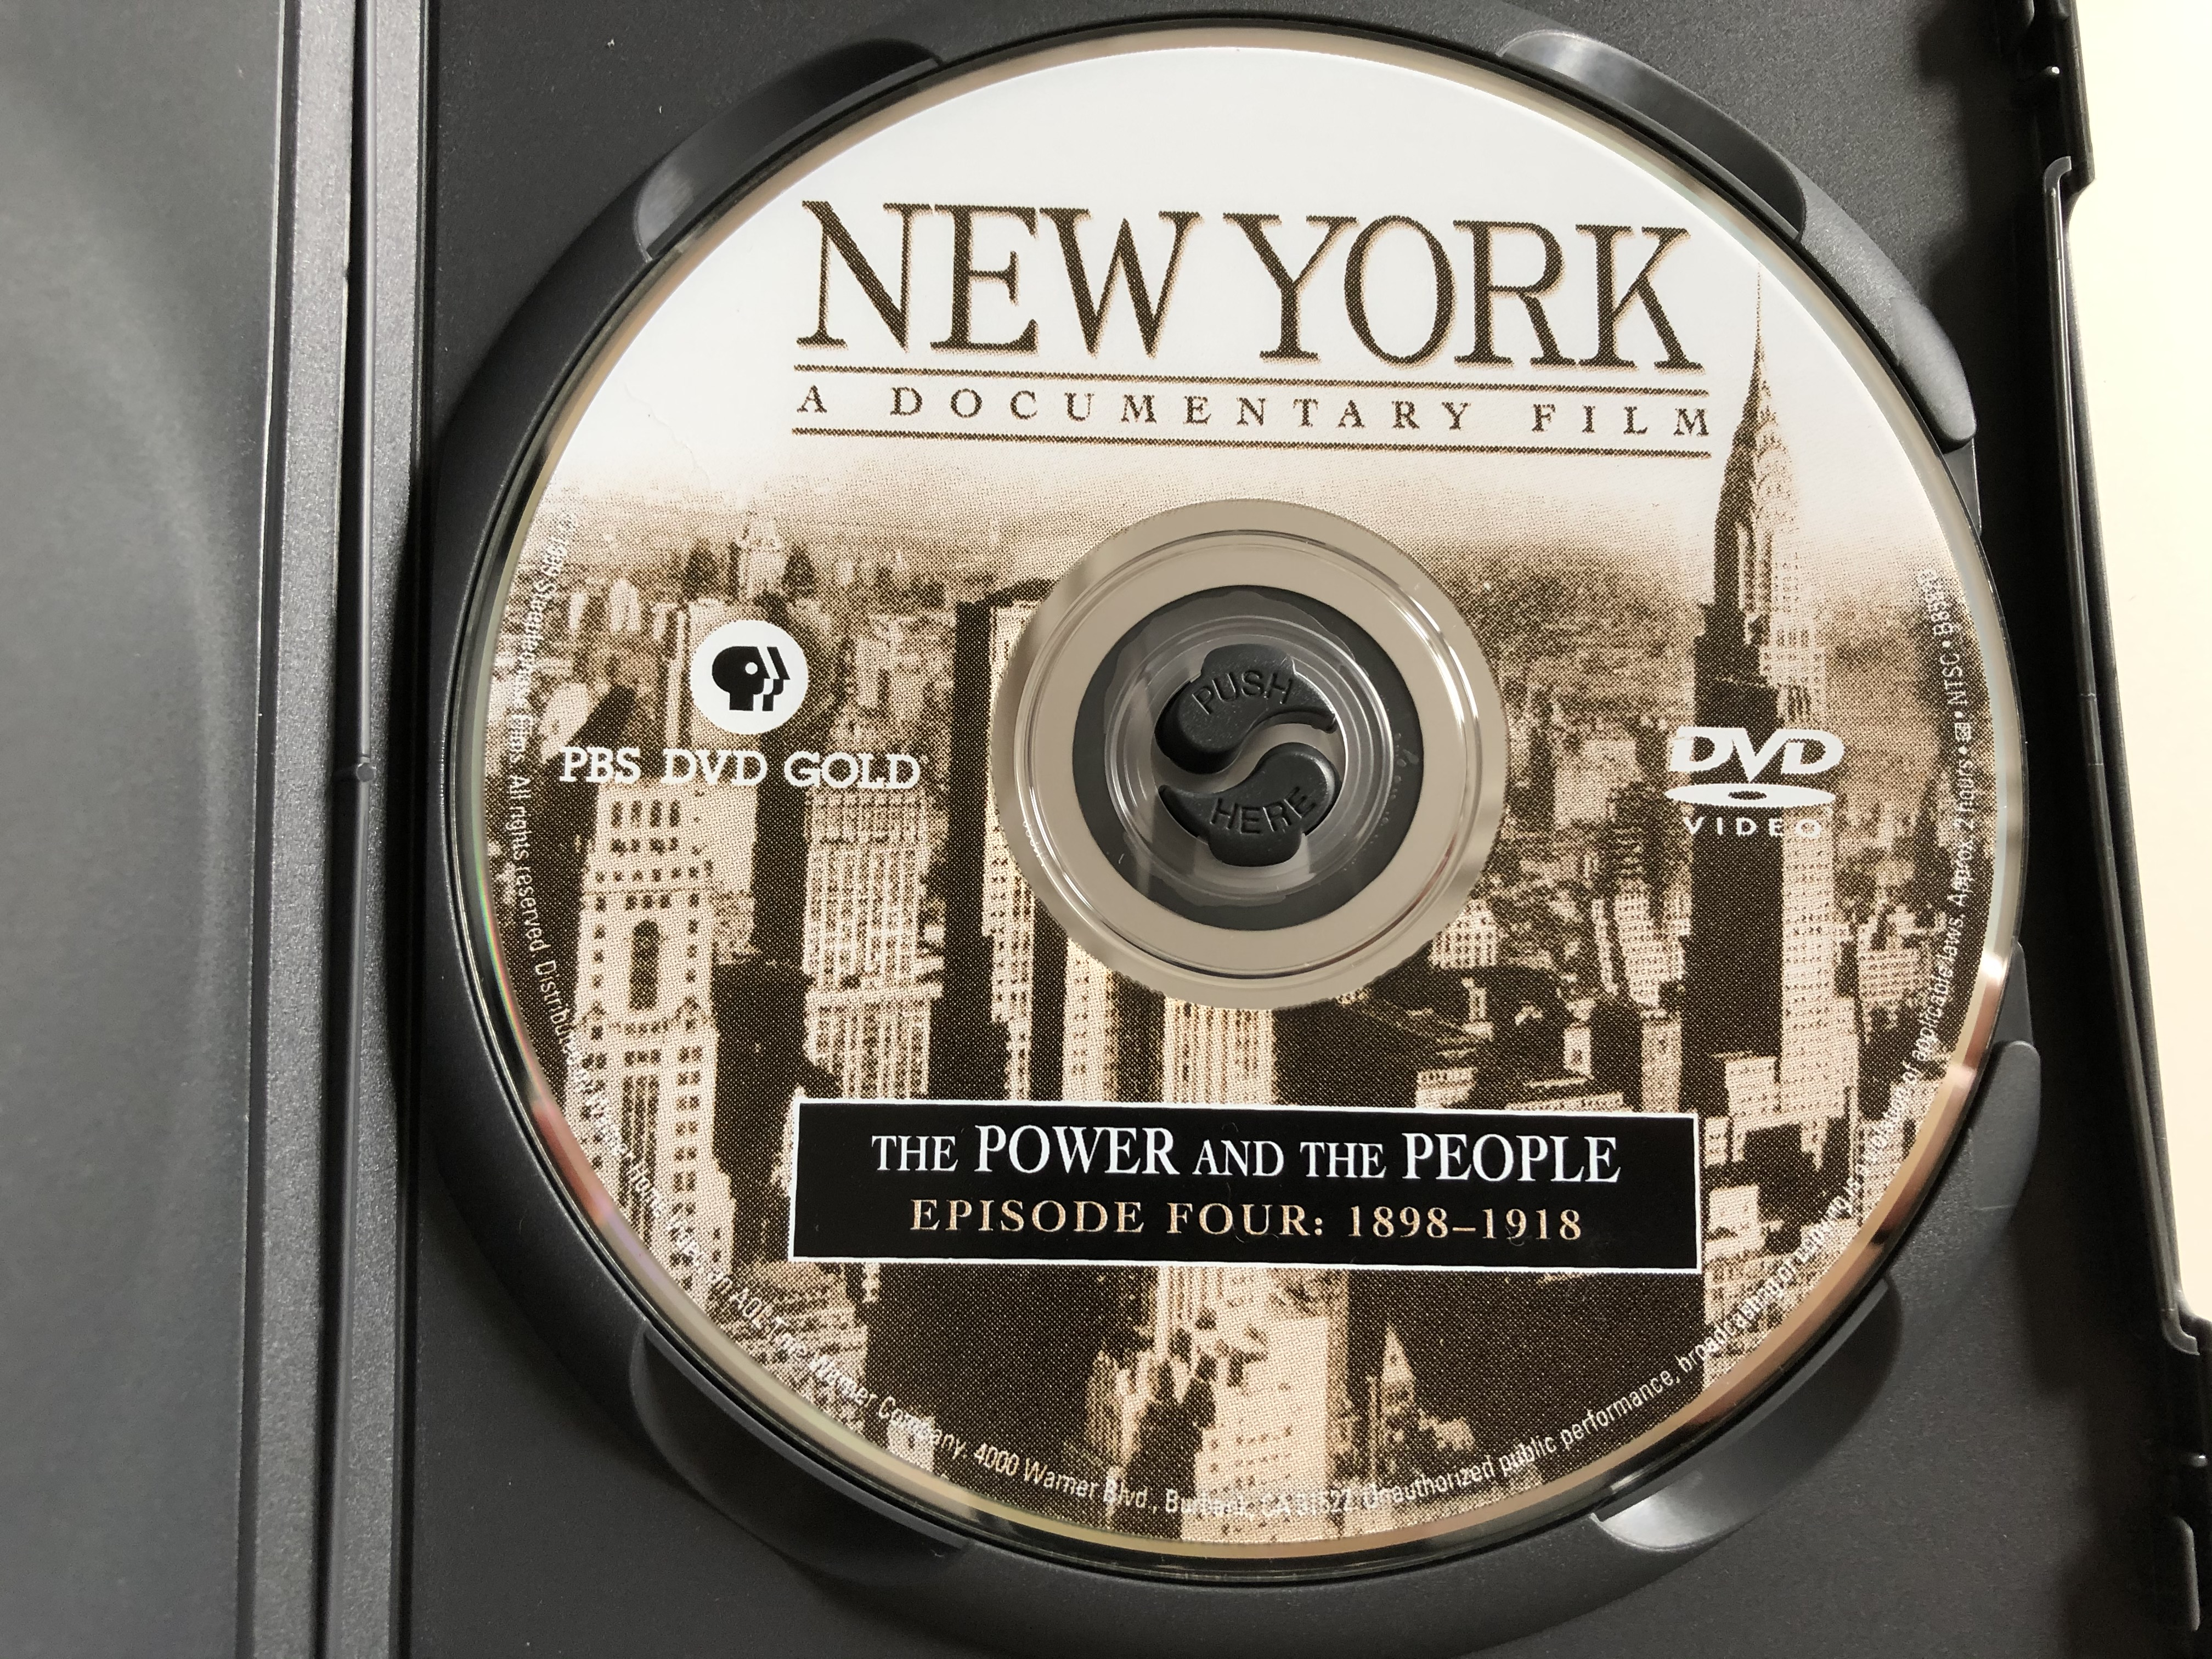 new-york-episode-4-1898-1918-the-power-and-the-people-dvd-1999-directed-by-ric-burns-2.jpg